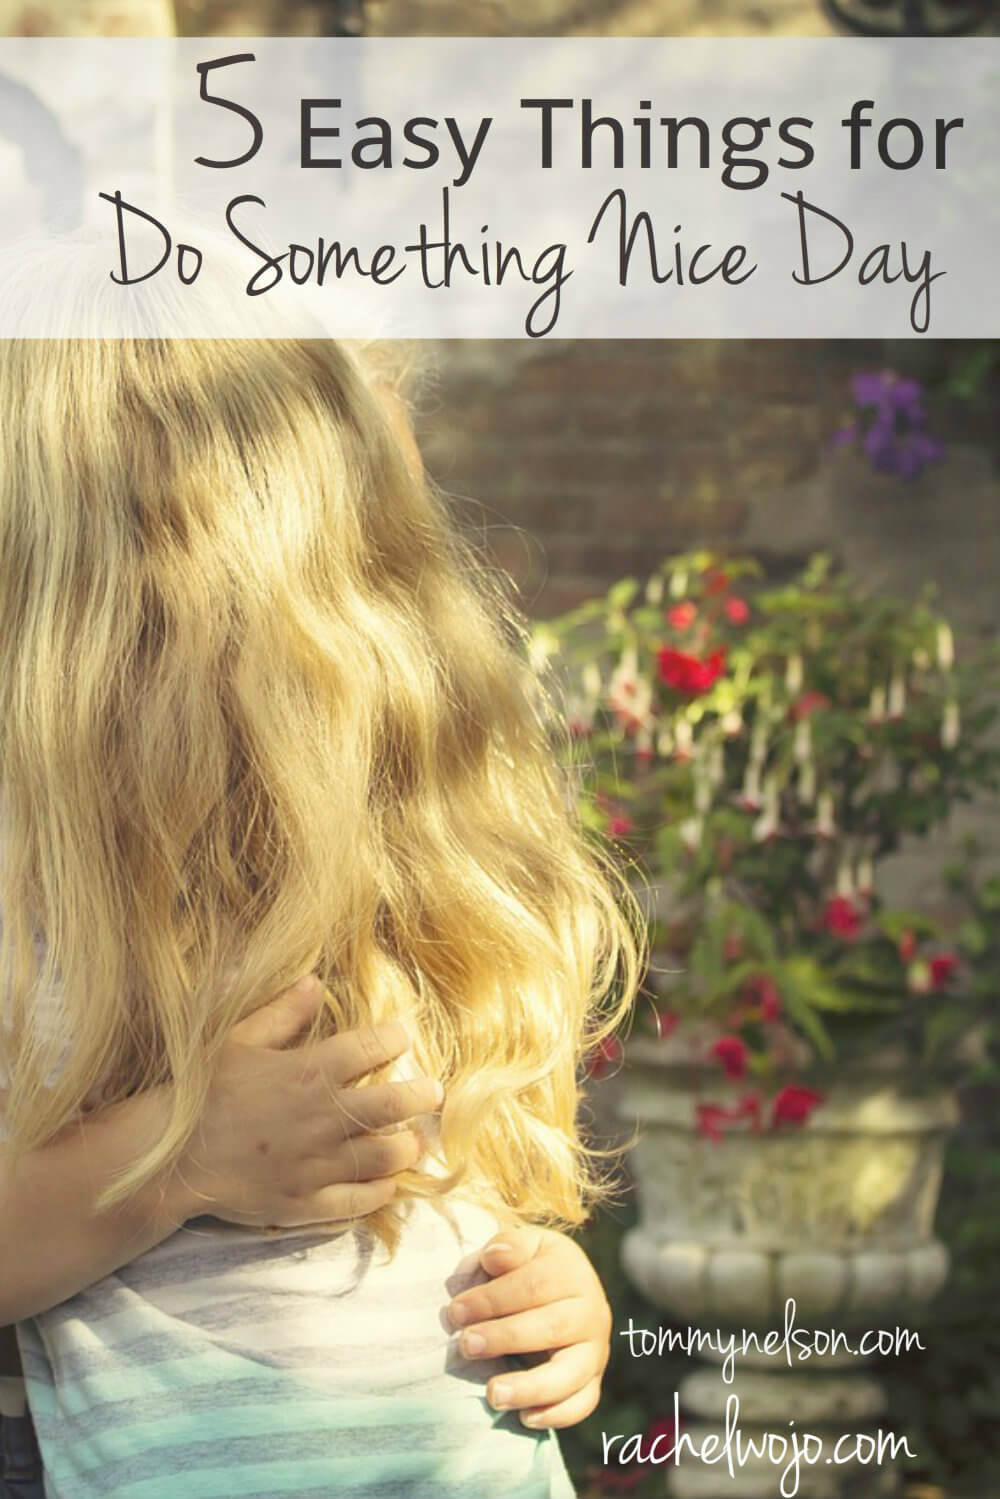 do something nice day pinterest tnelson